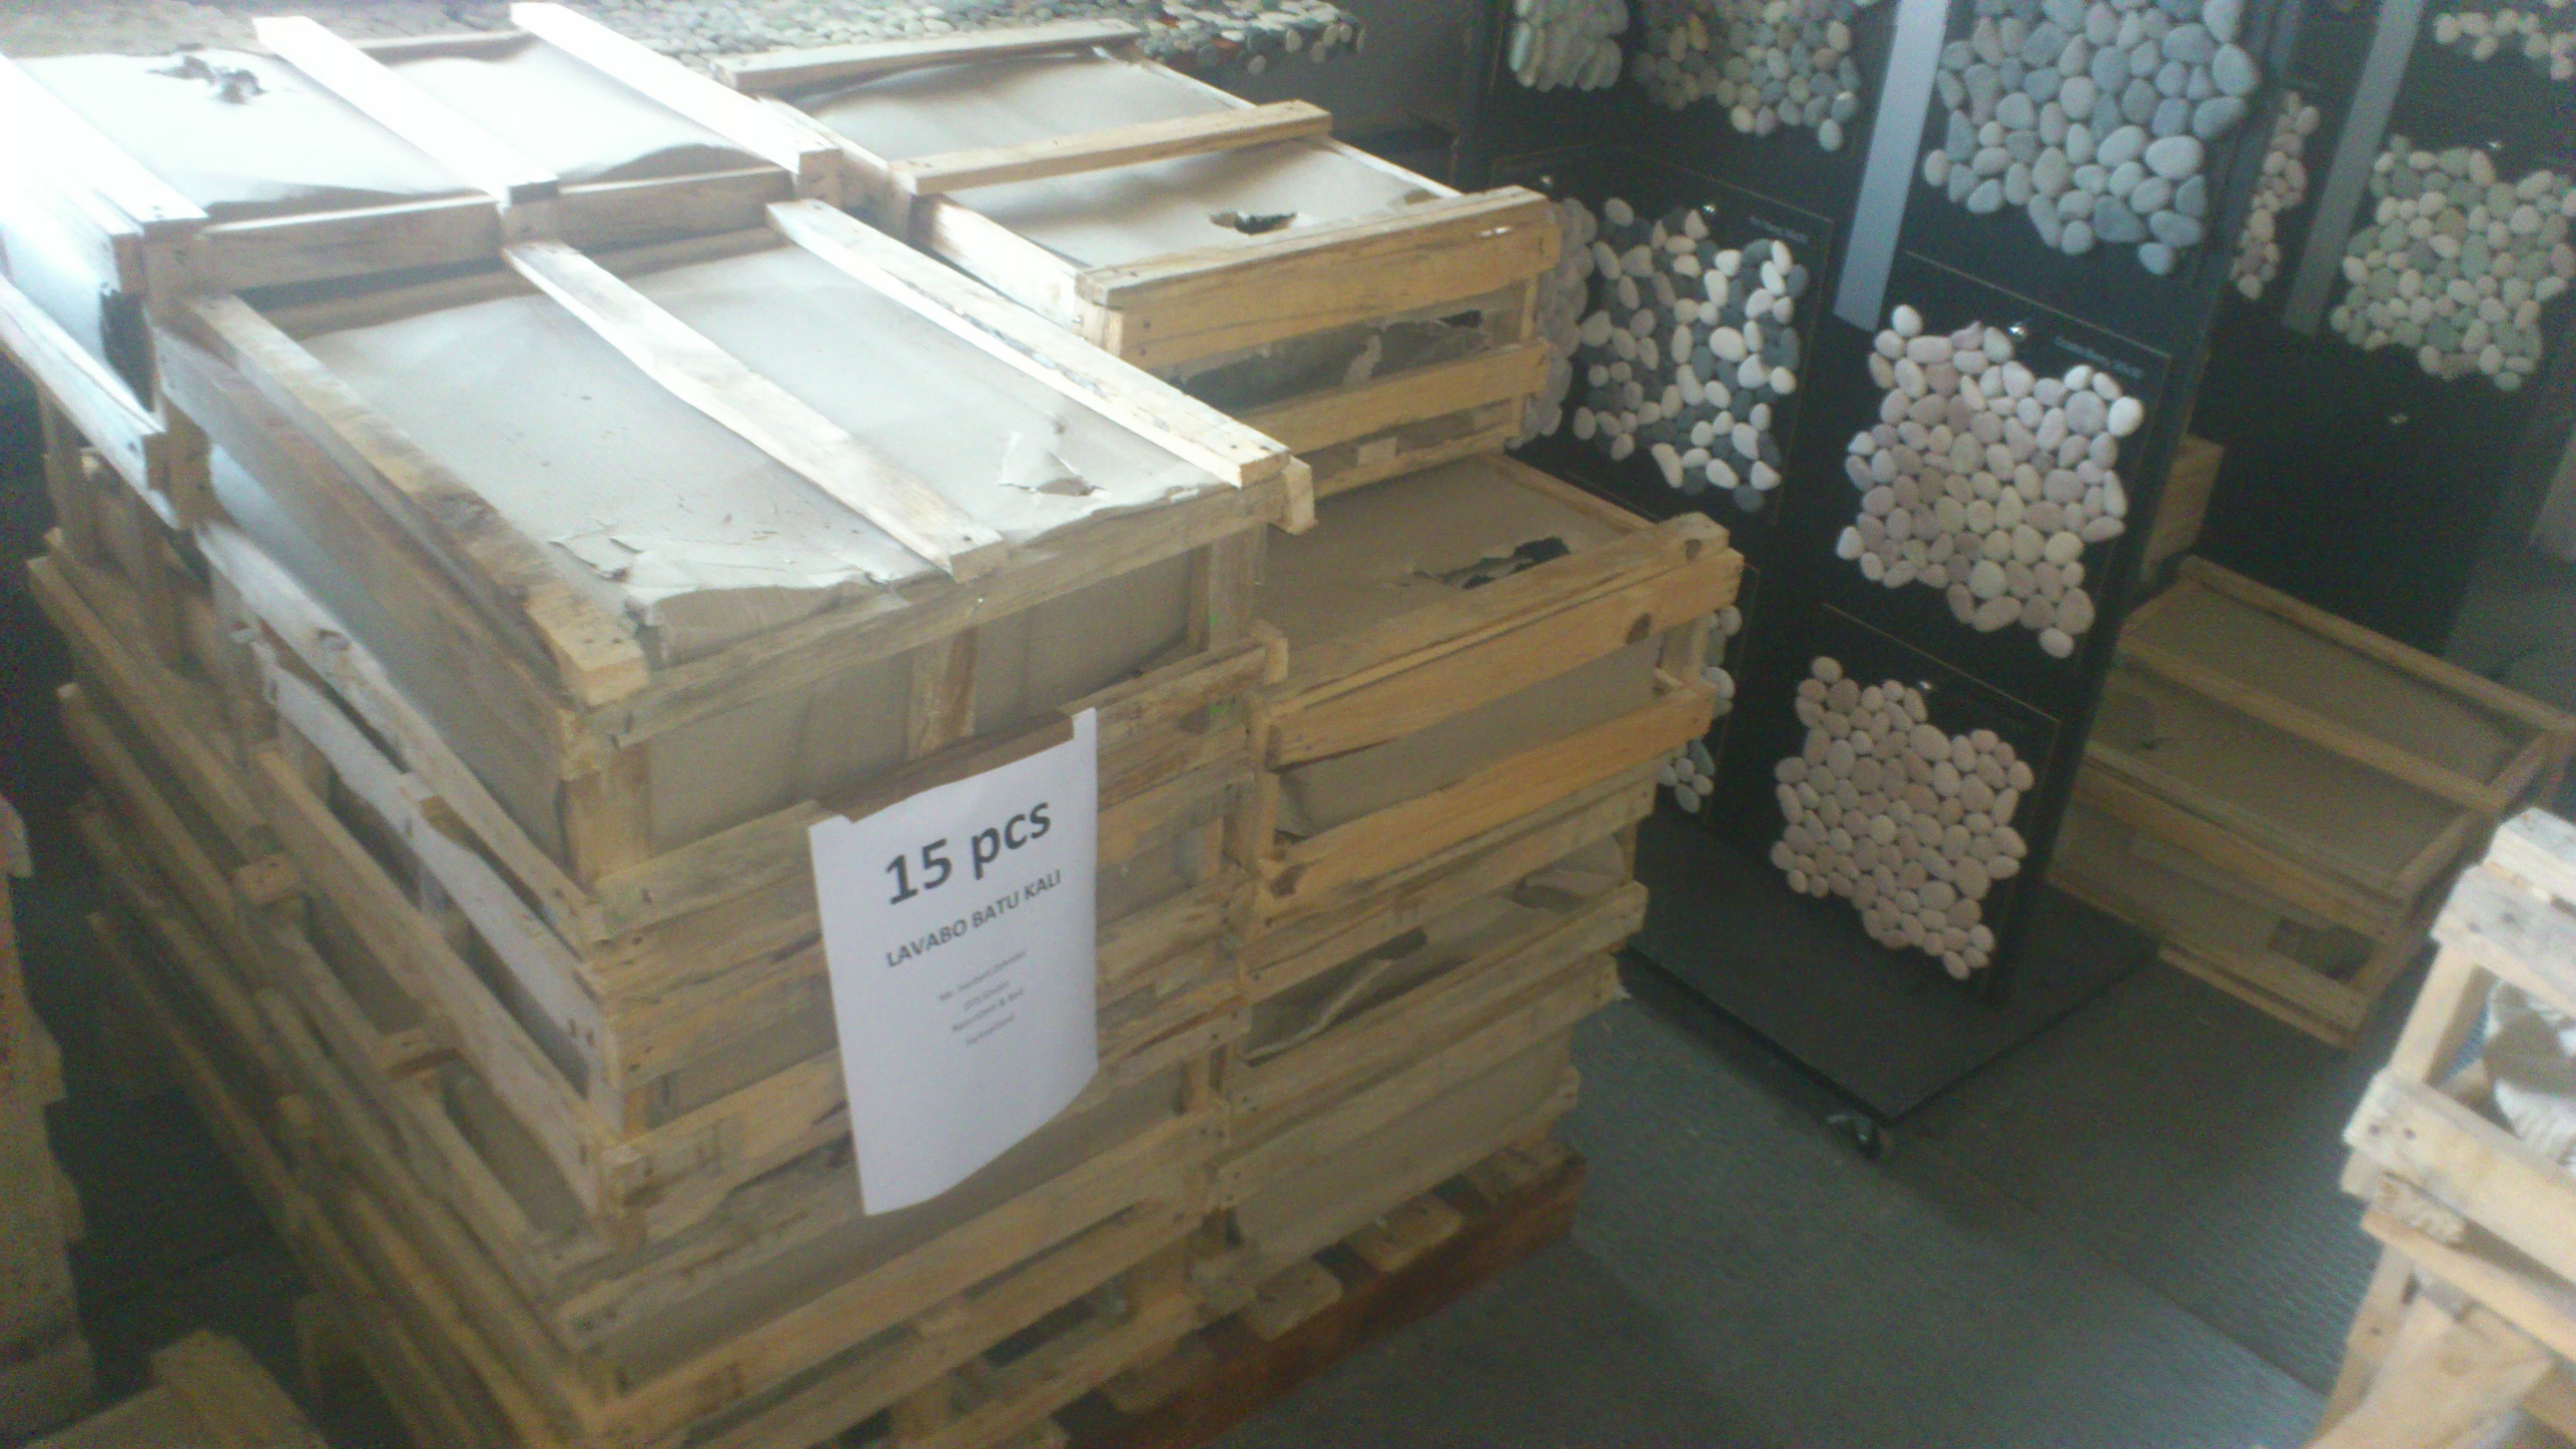 stone sinks manufacturer export packaging